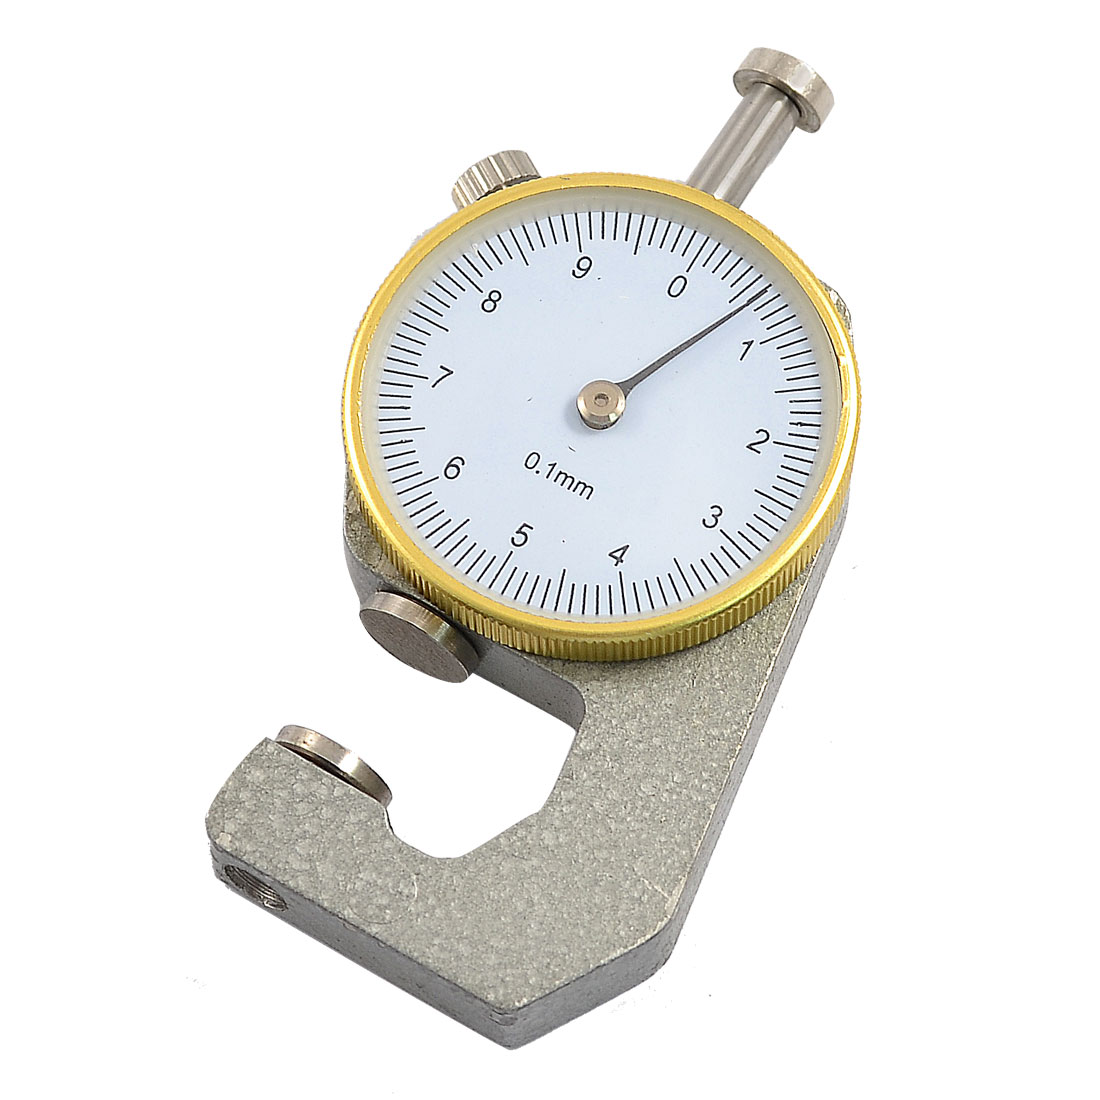 0 to 10mm Dial Indicator Pocket Thickness Gage Gauge Tool Nmgqf